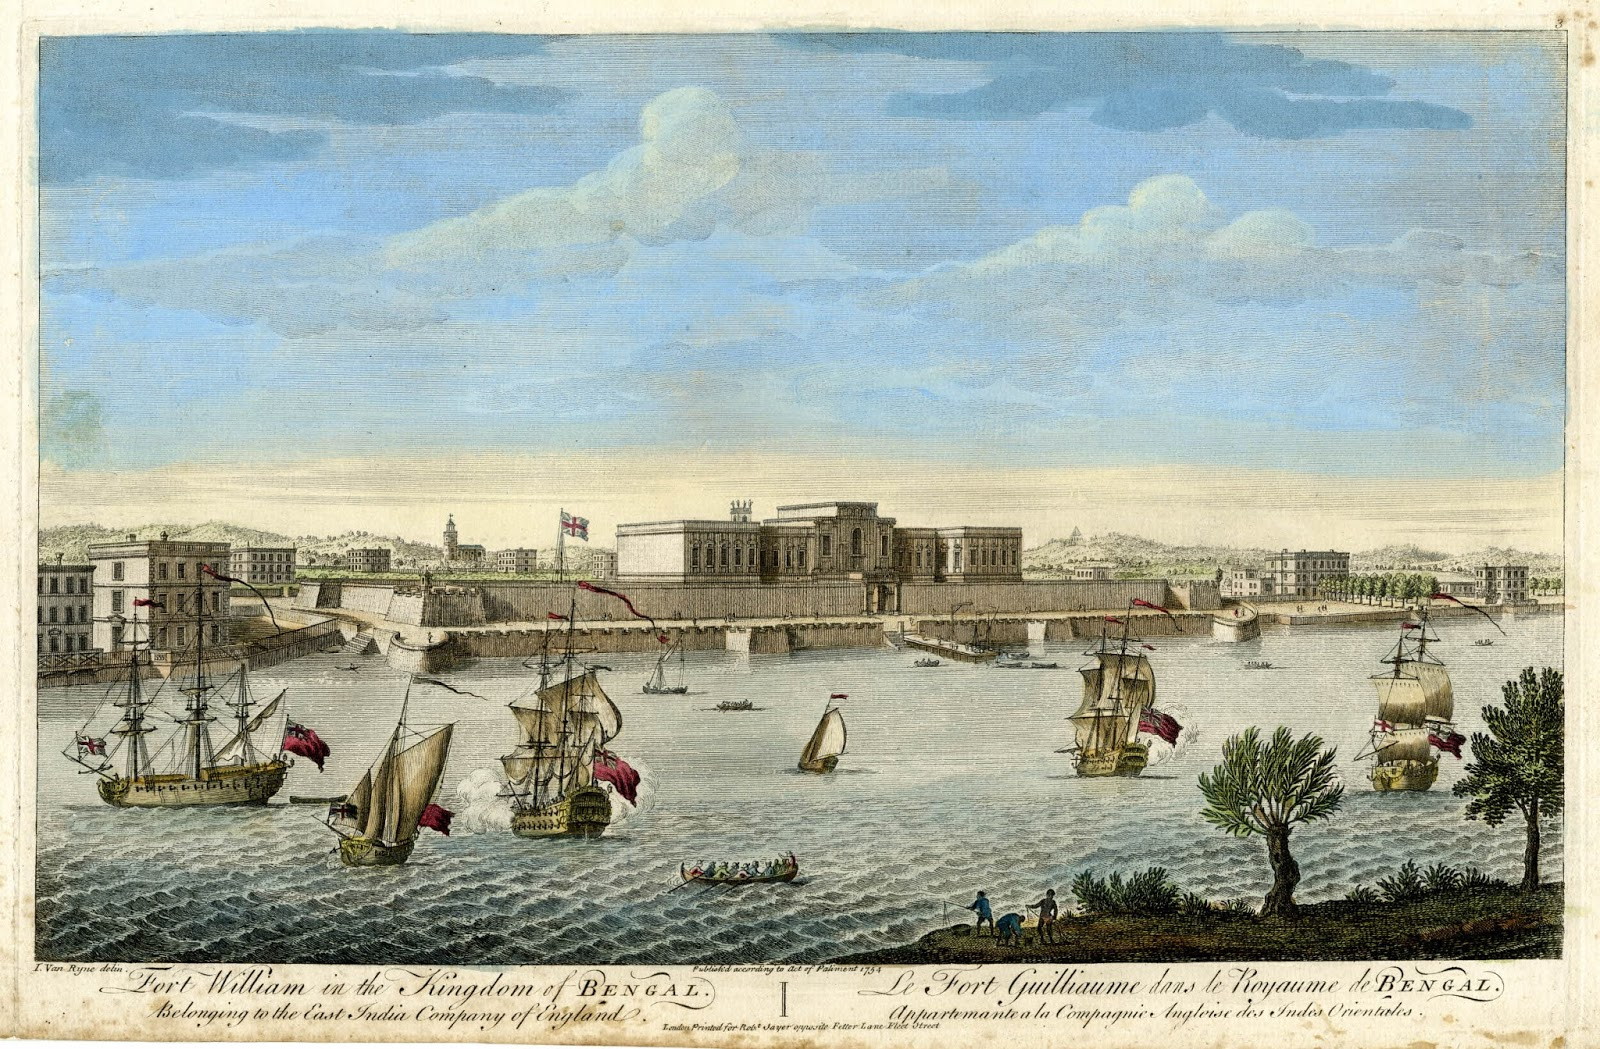 Fort William in the Kingdom of Bengal, 1754. ""